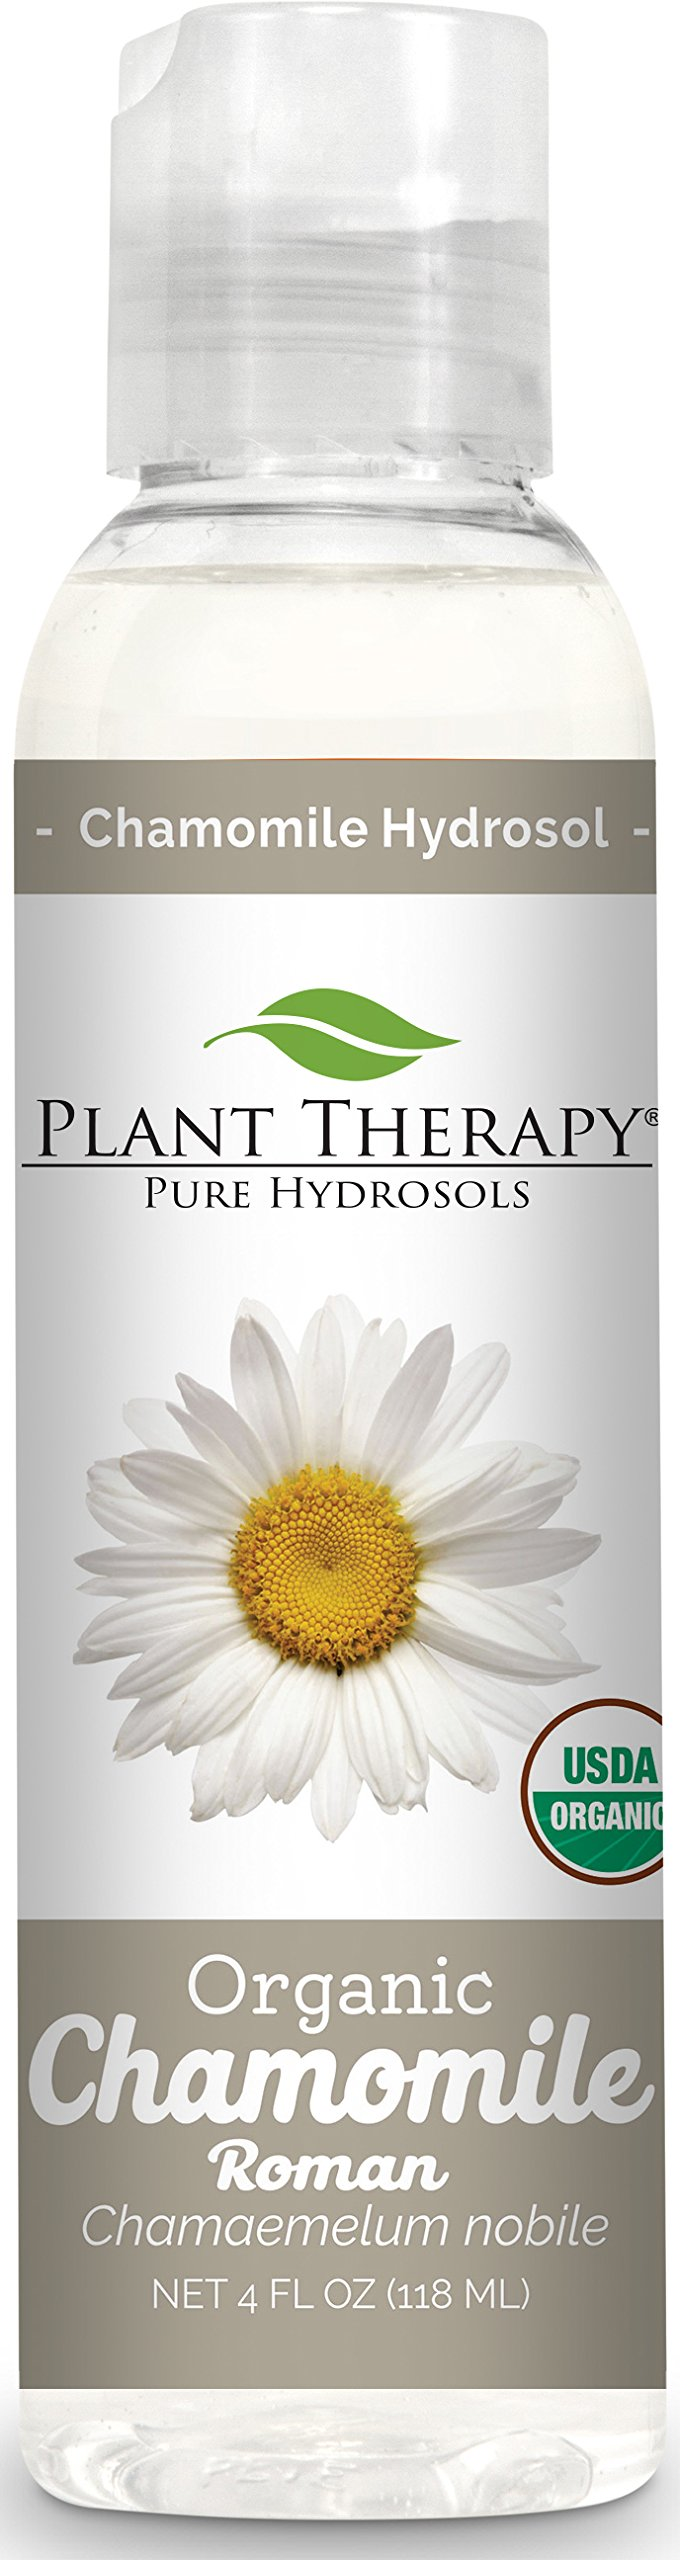 Plant Therapy Chamomile Roman Organic Hydrosol 4 oz By-Product of Essential Oils by Plant Therapy